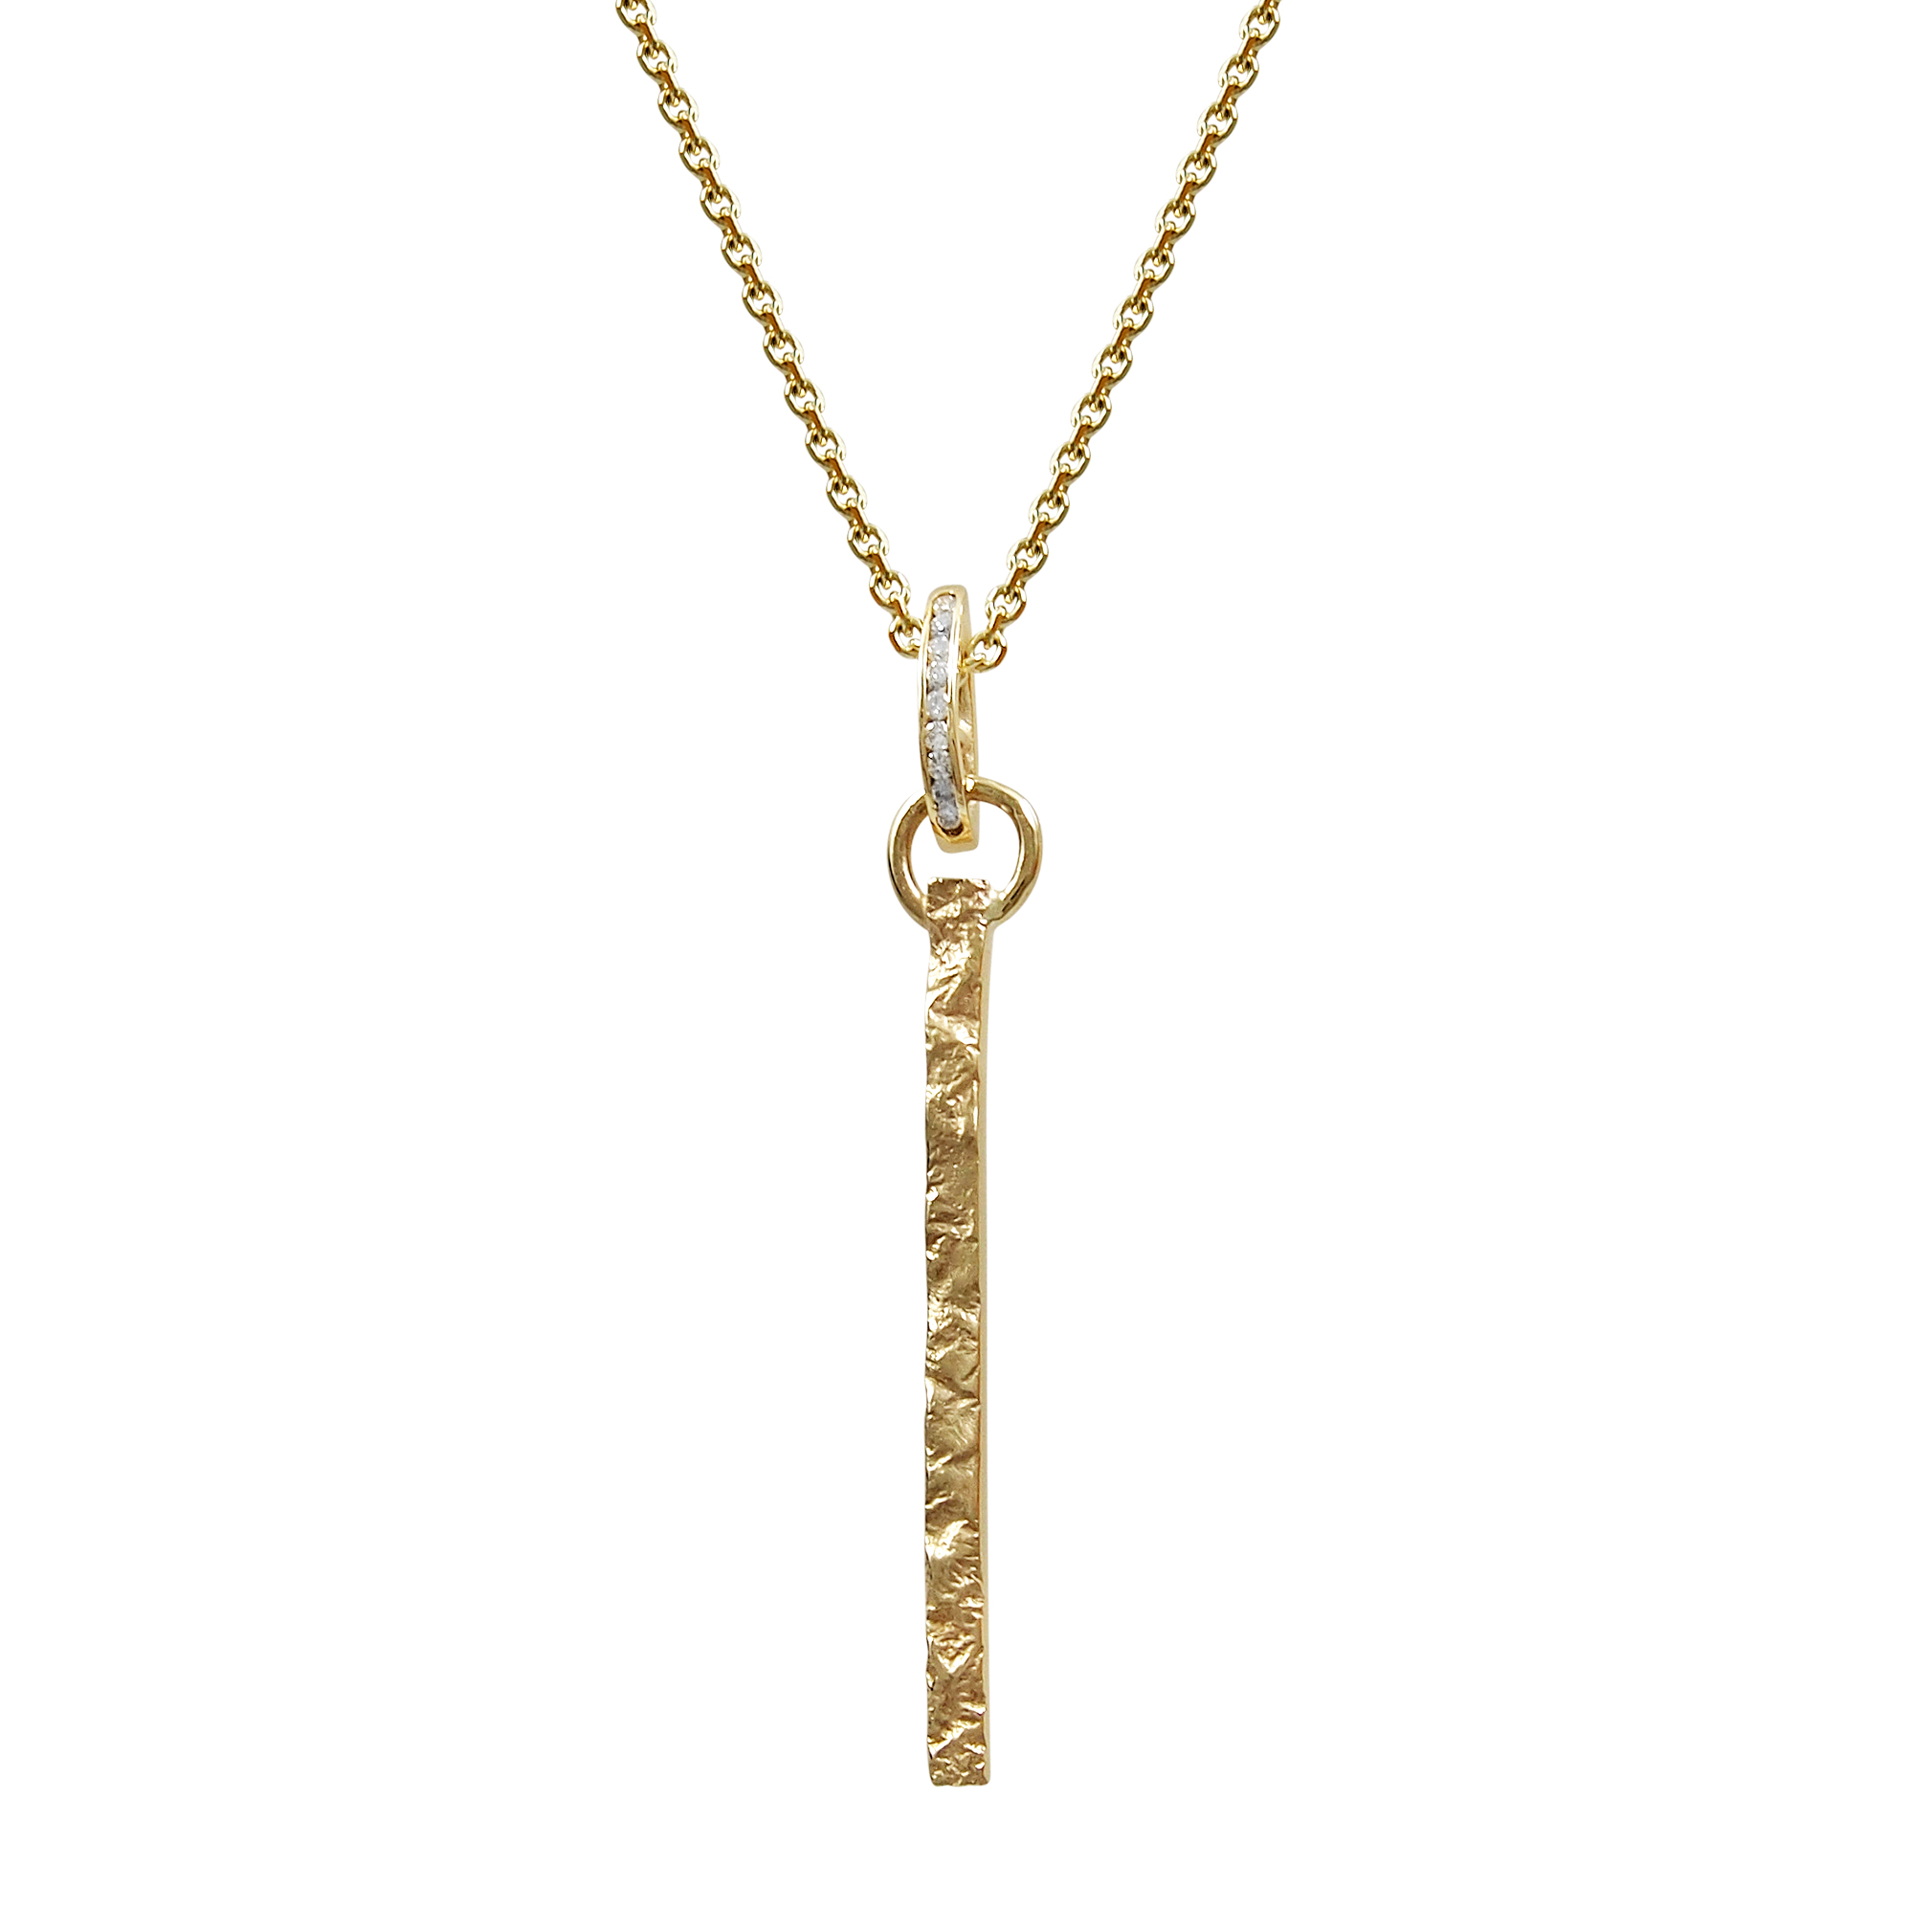 cosanuova gold bar necklaces pendant in love yellow necklace diamond jewelry